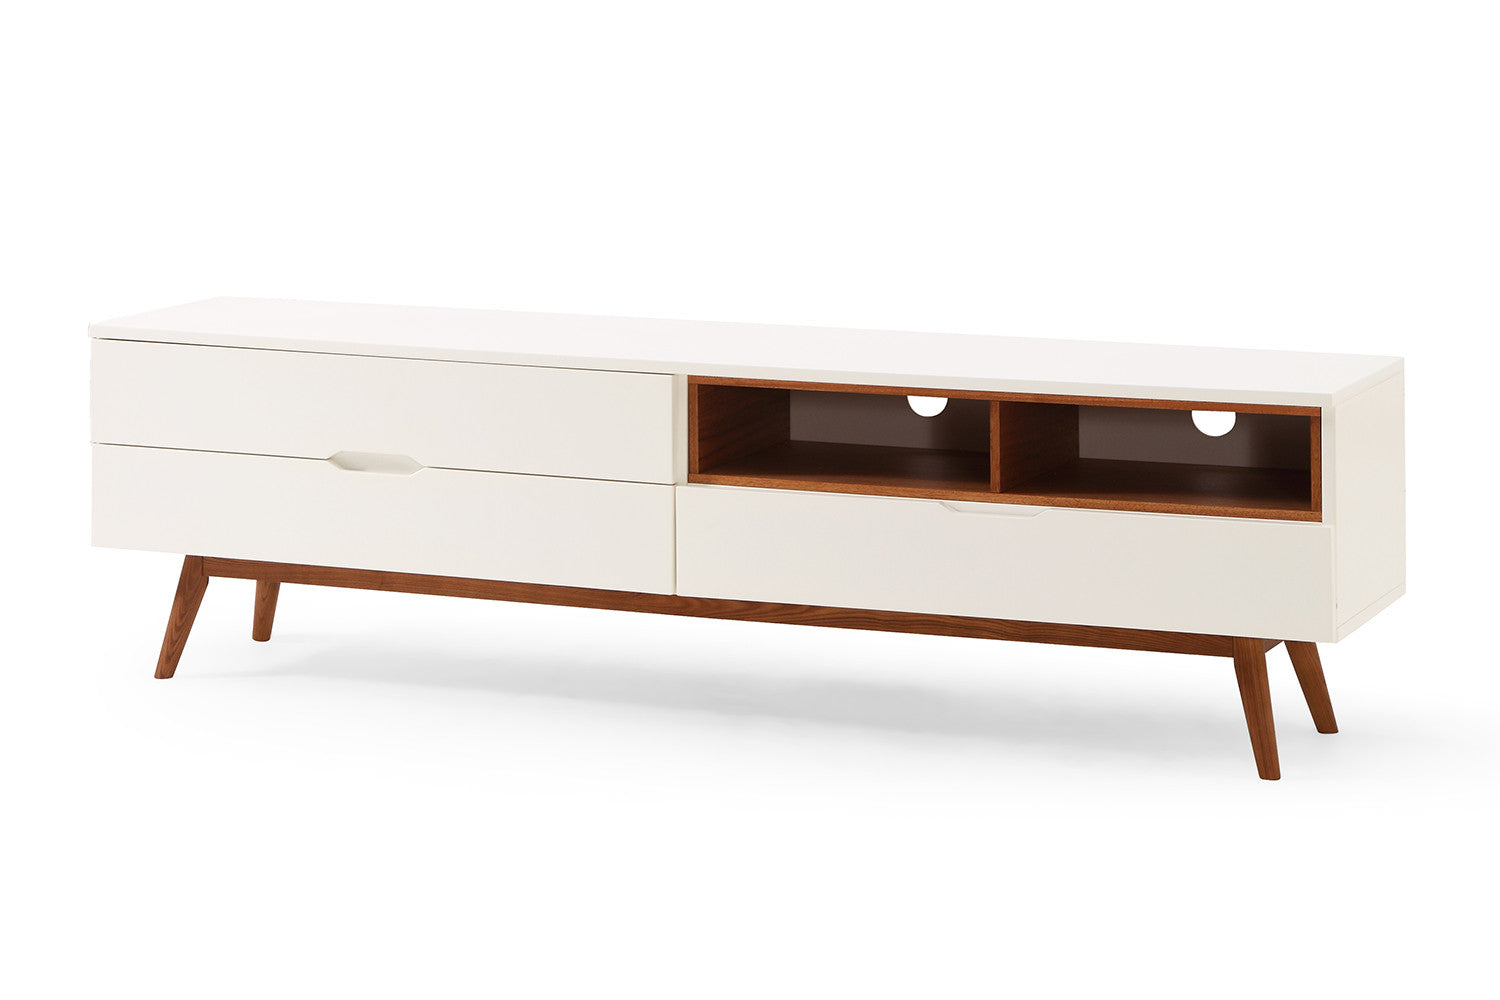 Meuble Tv Design Scandinave Lema Dewarens # Meuble Tv Qui Prend Pas De Place